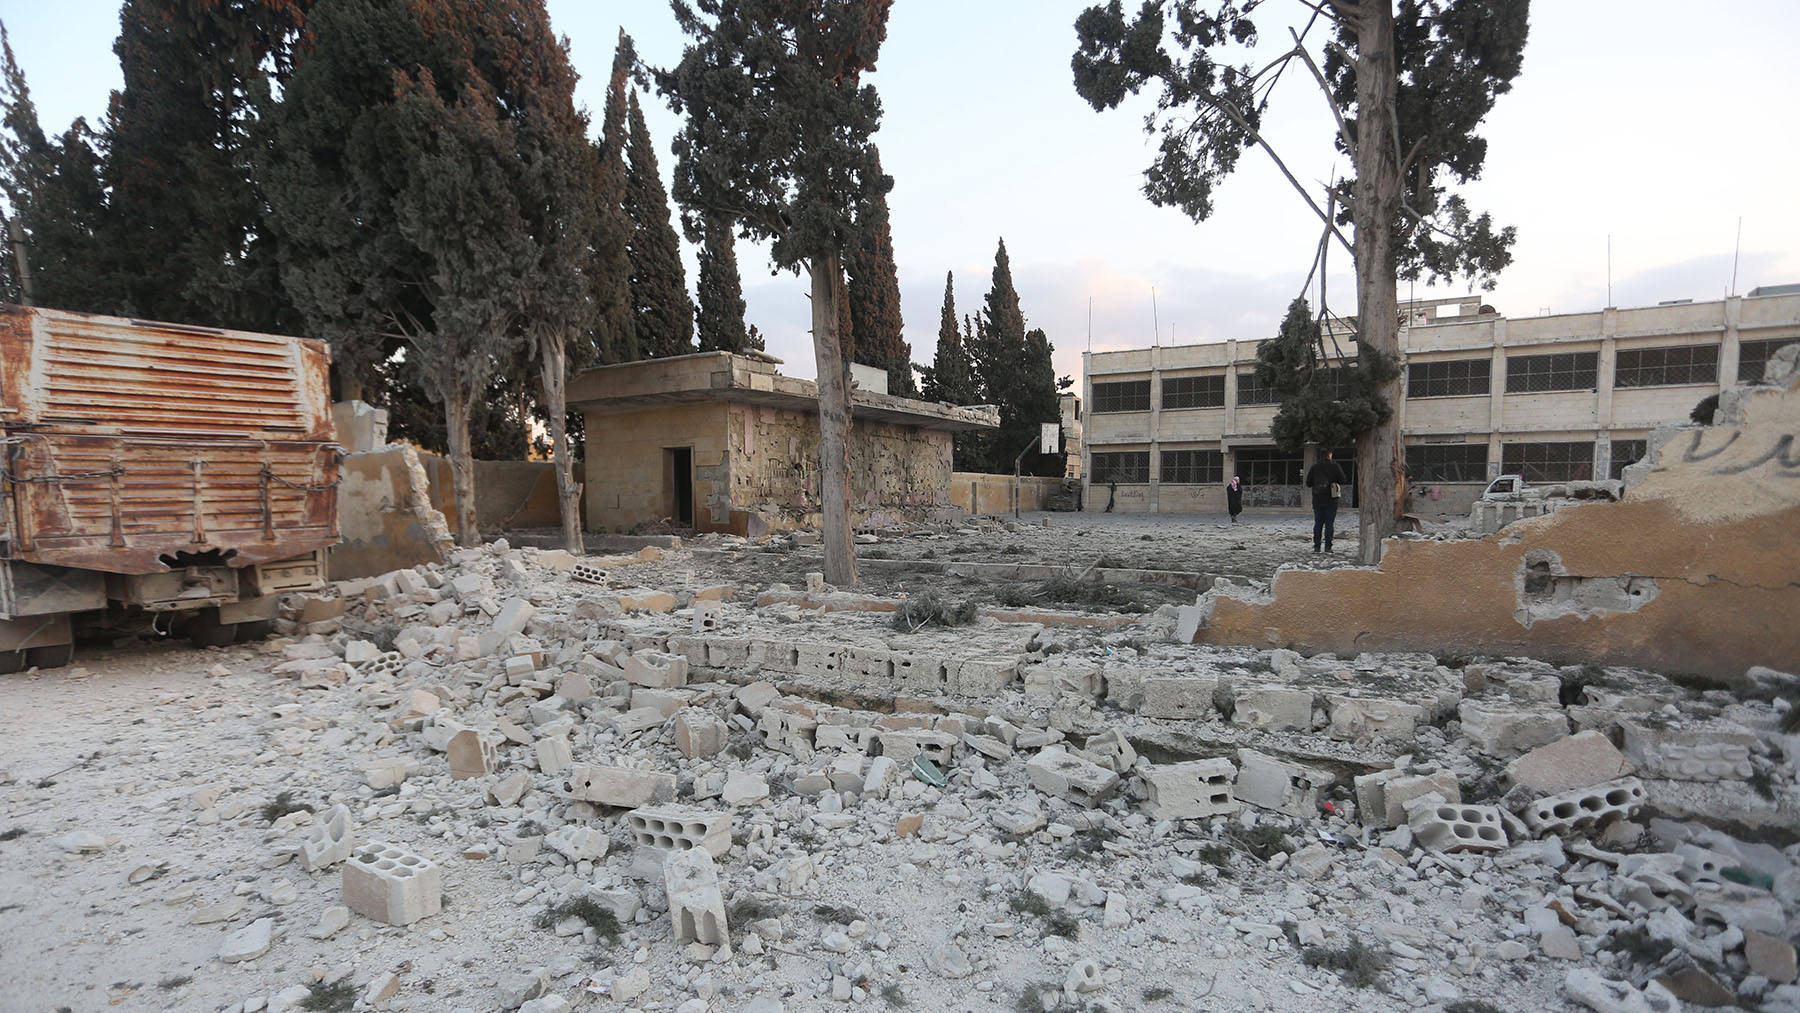 A Syrian school used as a shelter for internally displaced people was bombed on February 25, part of ongoing violence in the region. (UNICEF/Suleiman)